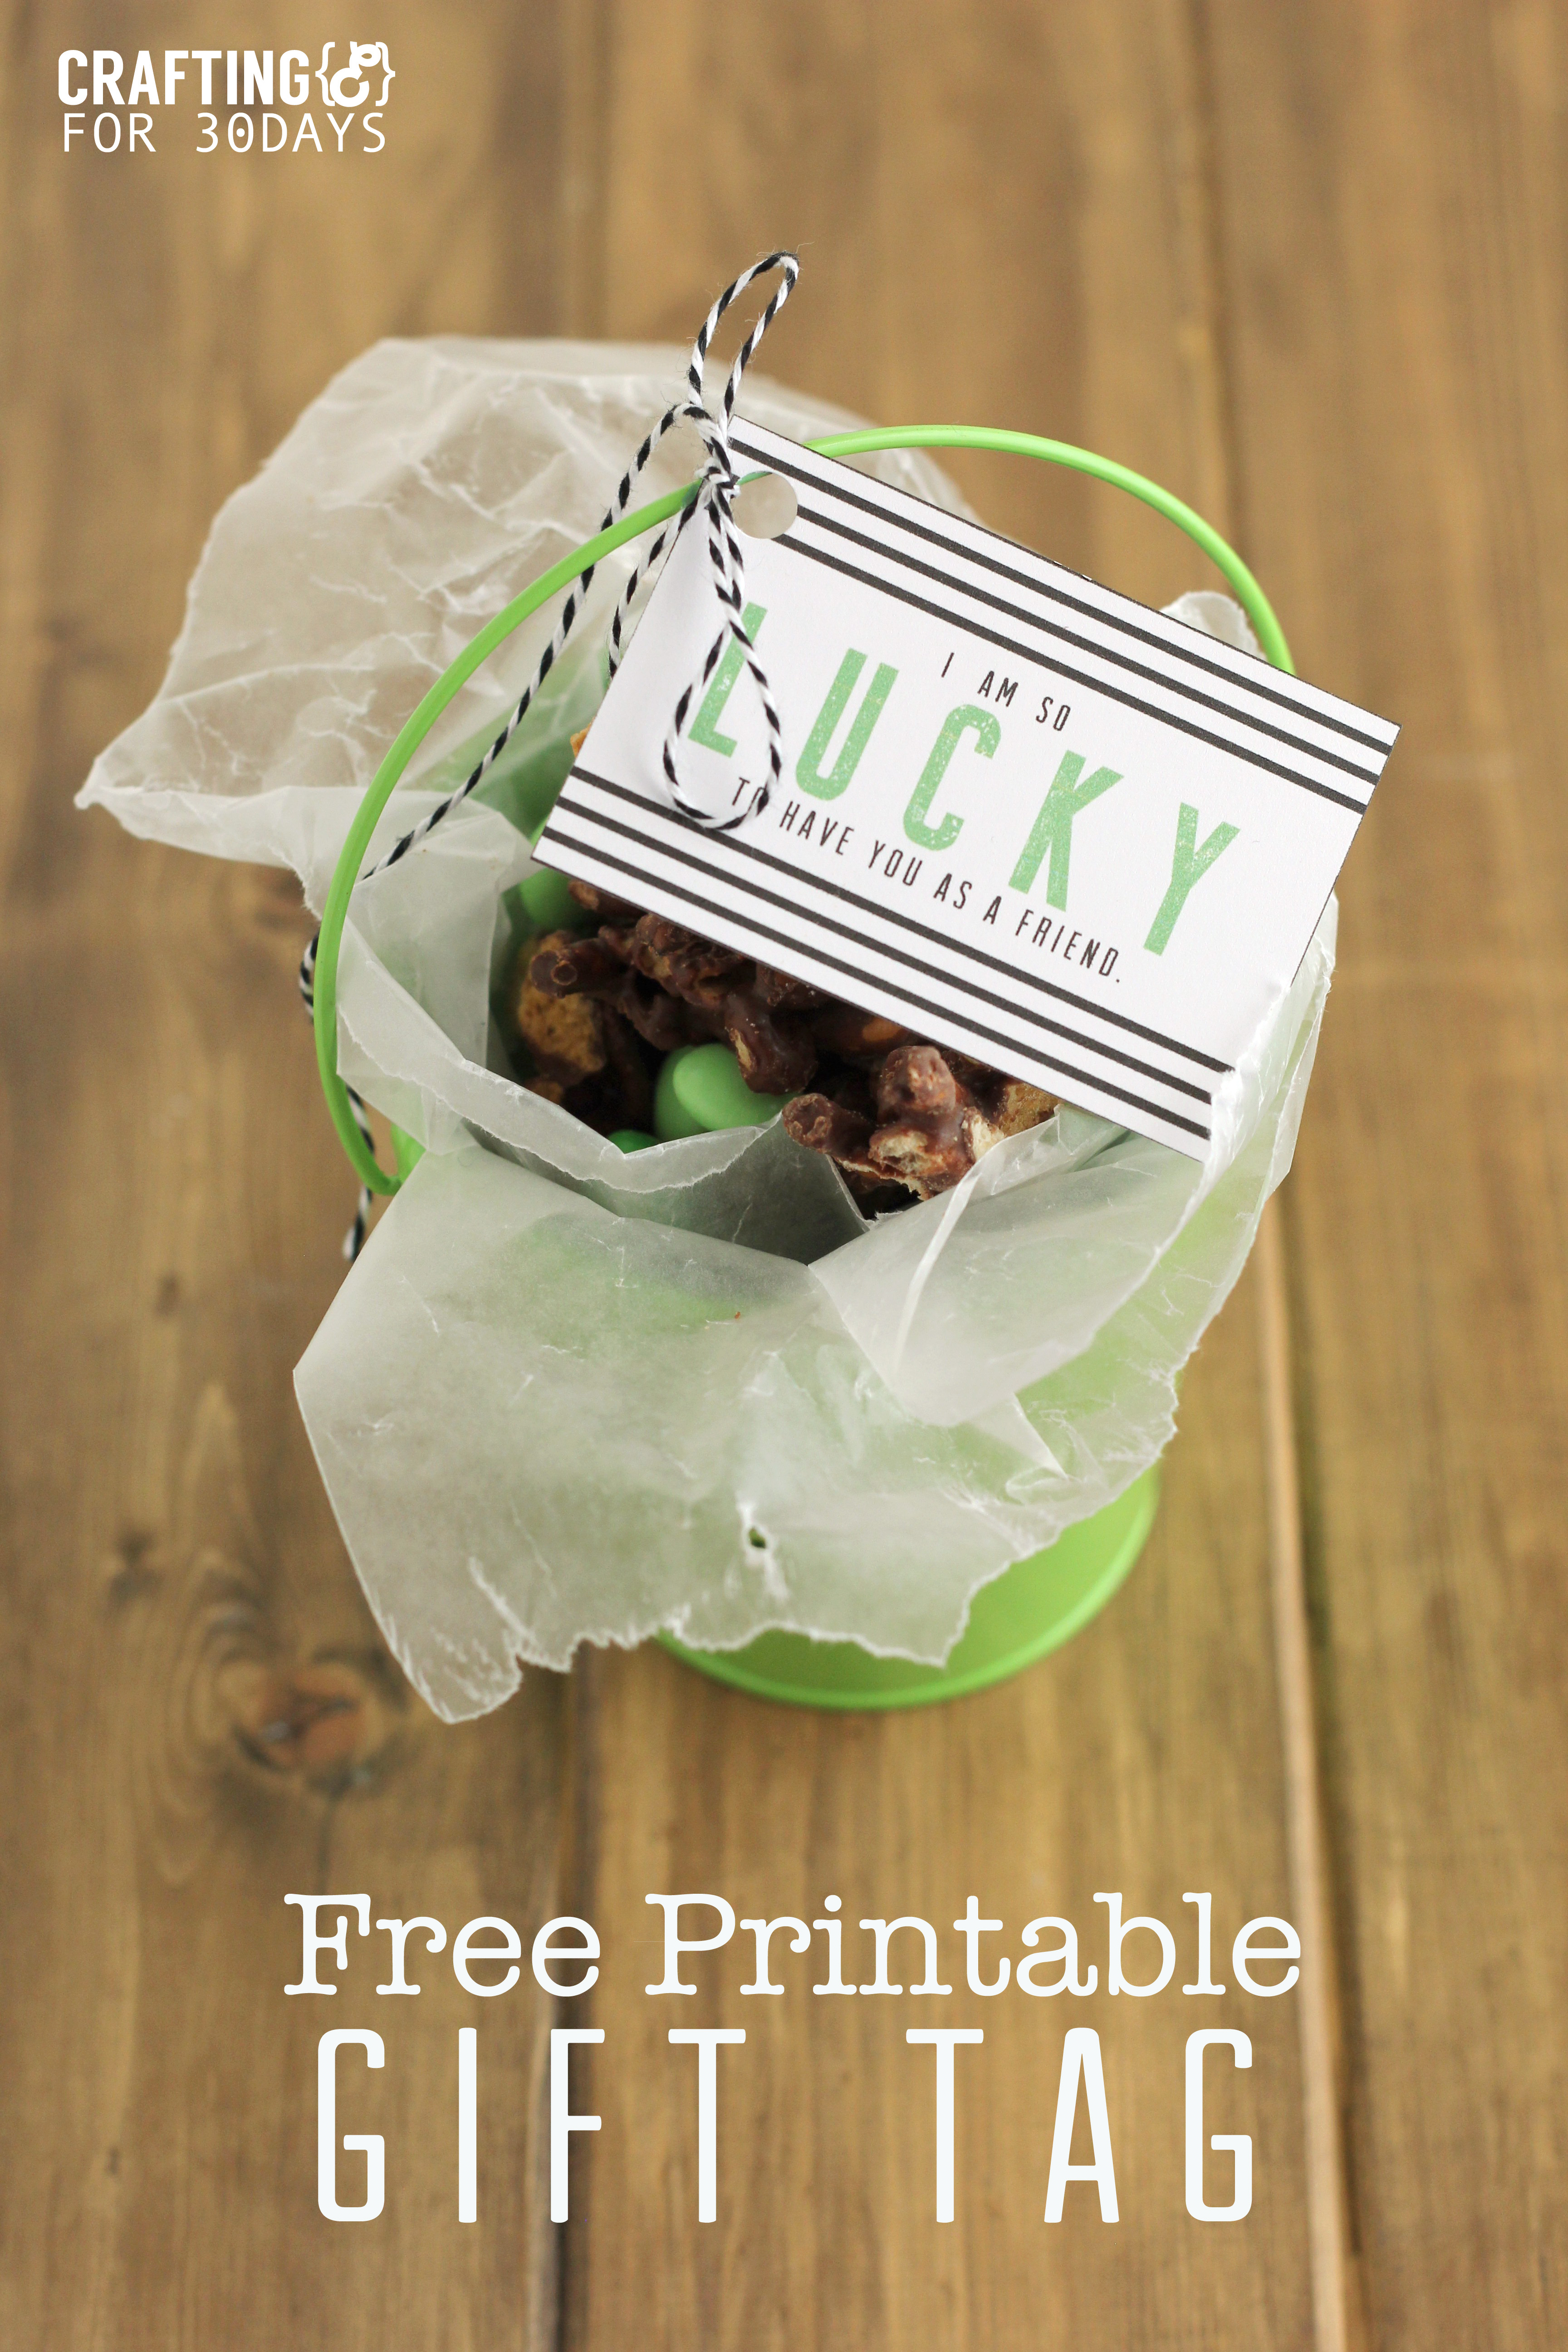 Free Printable St. Patrick's Day Gift Tag